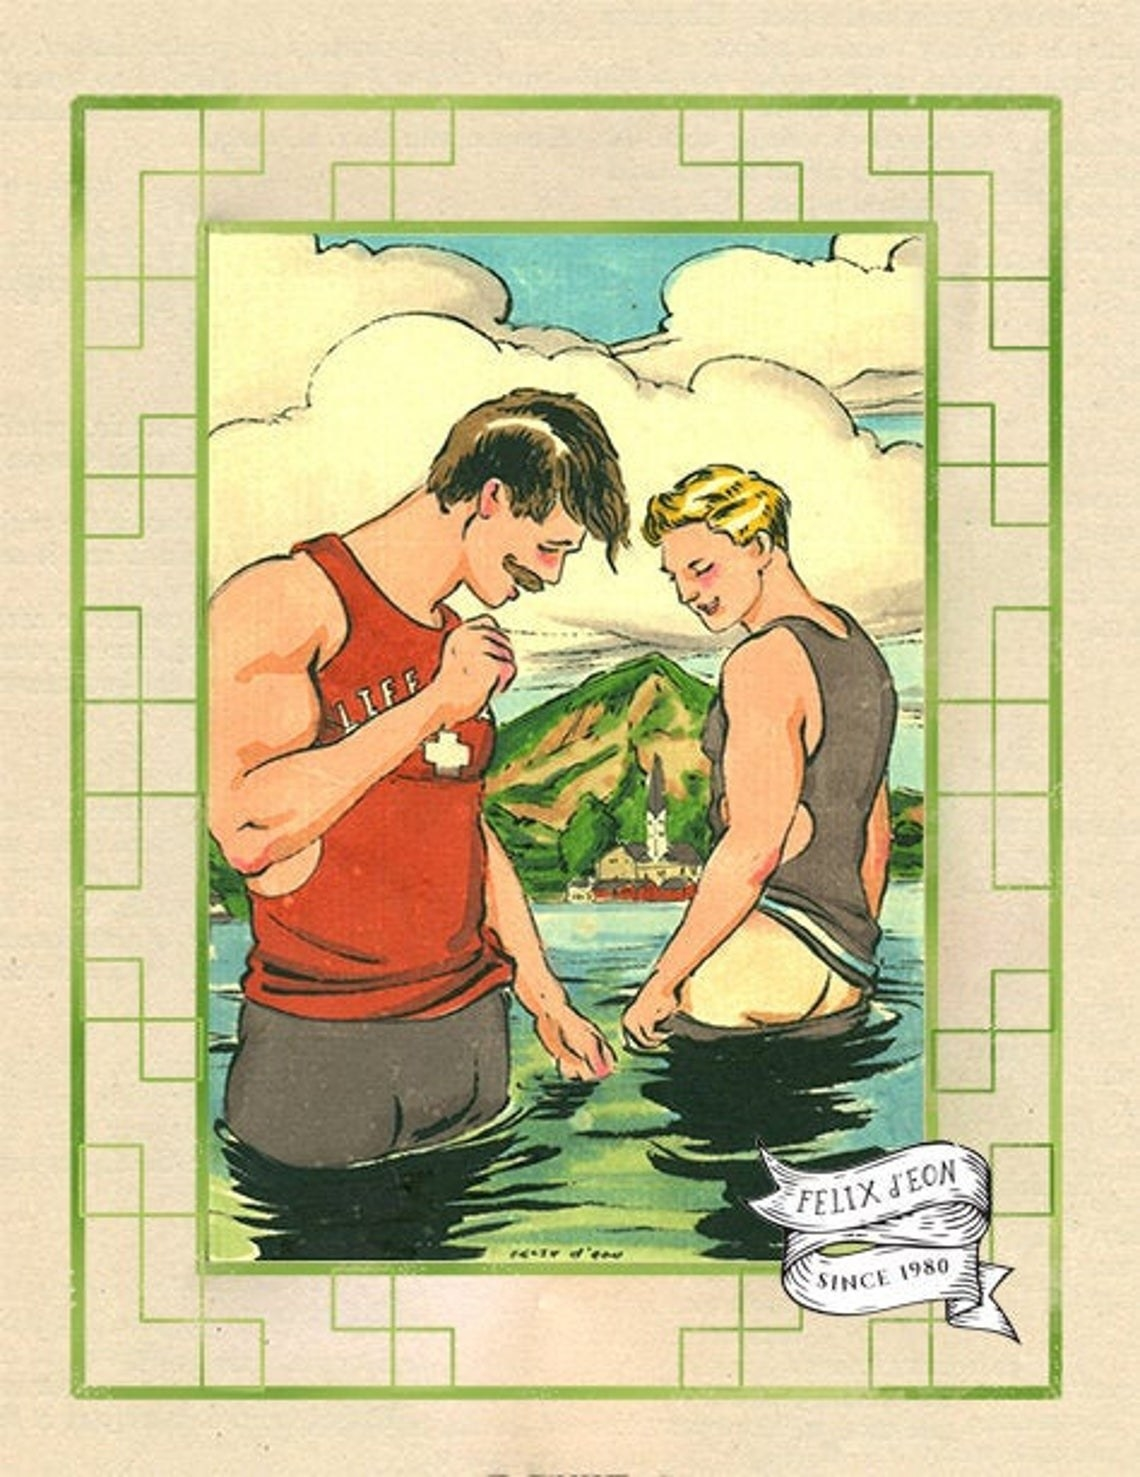 Two people with mustaches, short hair, and wearing vintage male swimsuits admiring each other's bodies in the water and nearly holding hands. There is a mountain and village in the background.